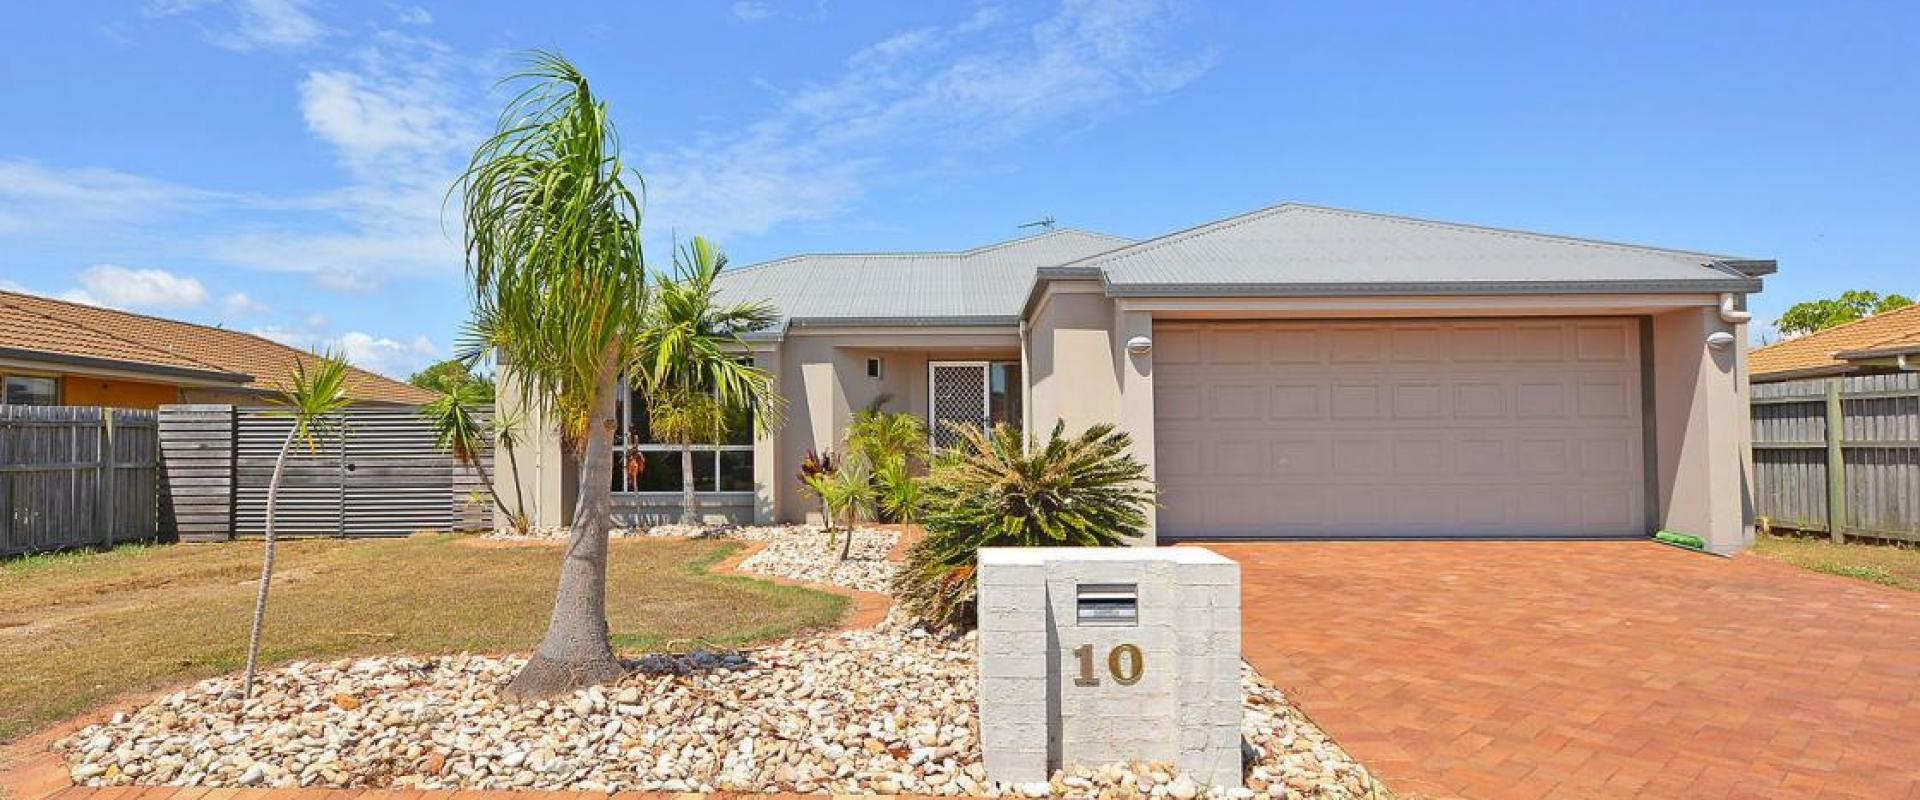 INDIVIDUAL SPACIOUS FAMILY HOME WITH A BLANK CANVAS FOR A SWIMMING POOL AND DOUBLE SHED S.T.C.A. LARGE LIVING RM, WALK IN ROBE, 3.9 M WIDE SIDE ACCESS